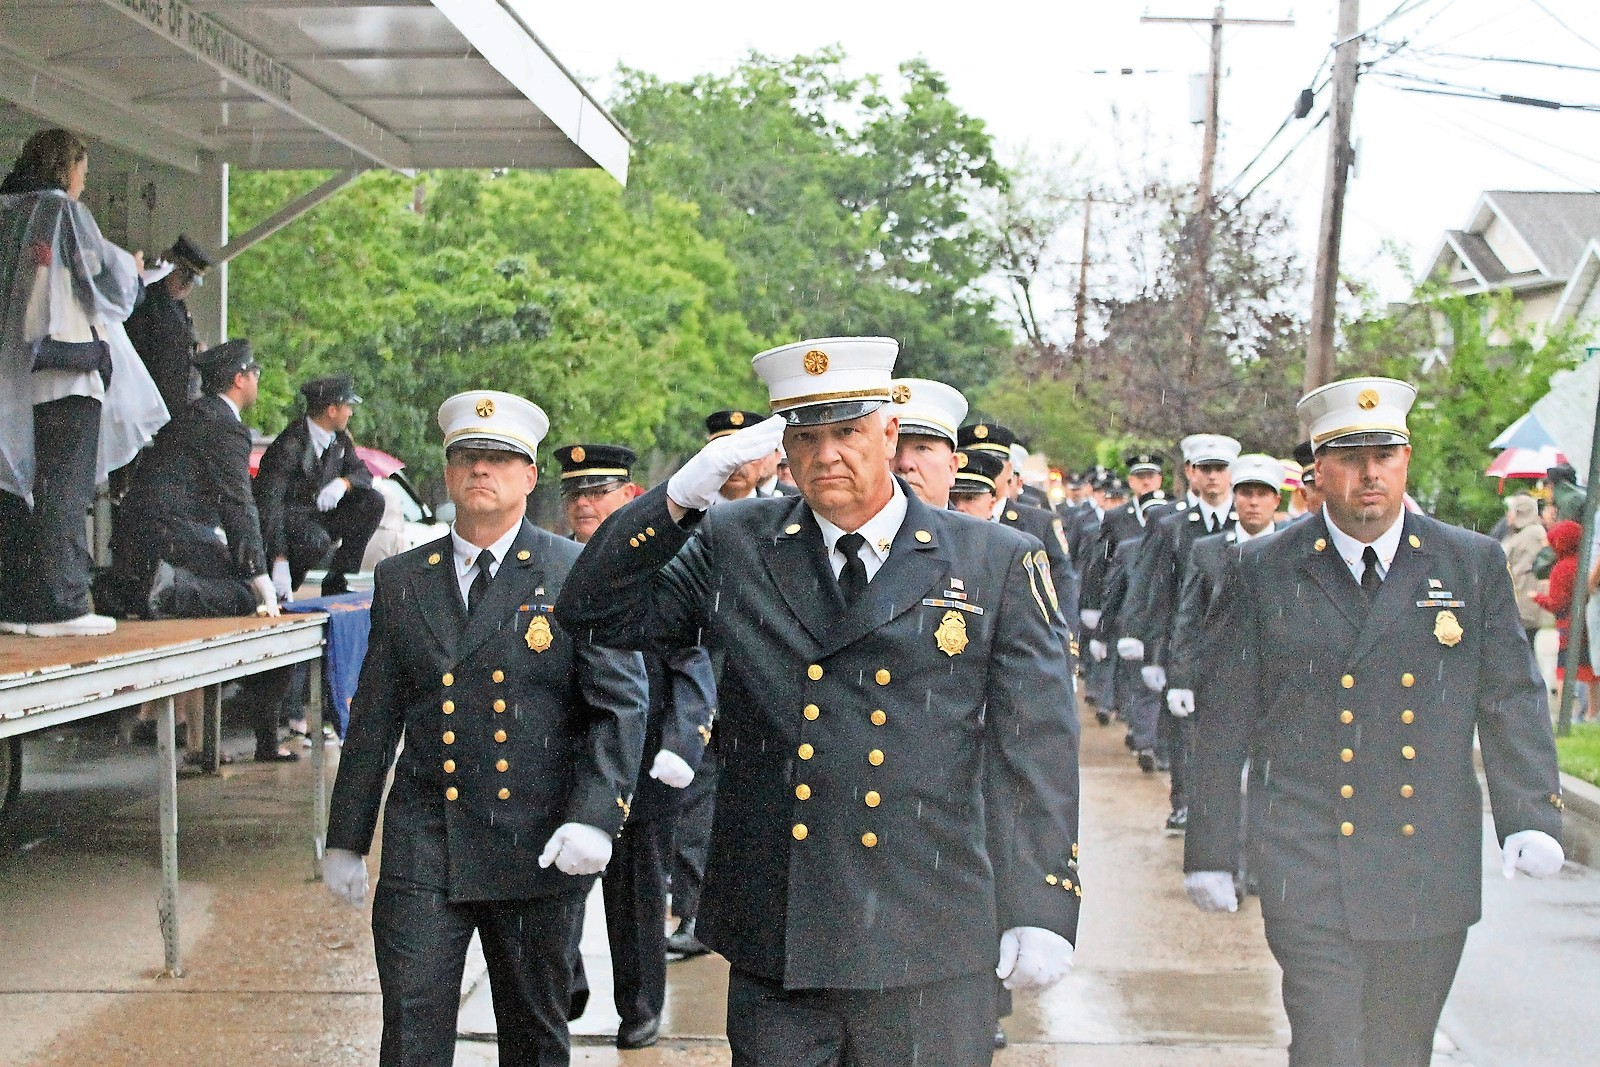 The late James McDermott is the only person in the history of the Lynbrook Fire Department to be named chief twice.